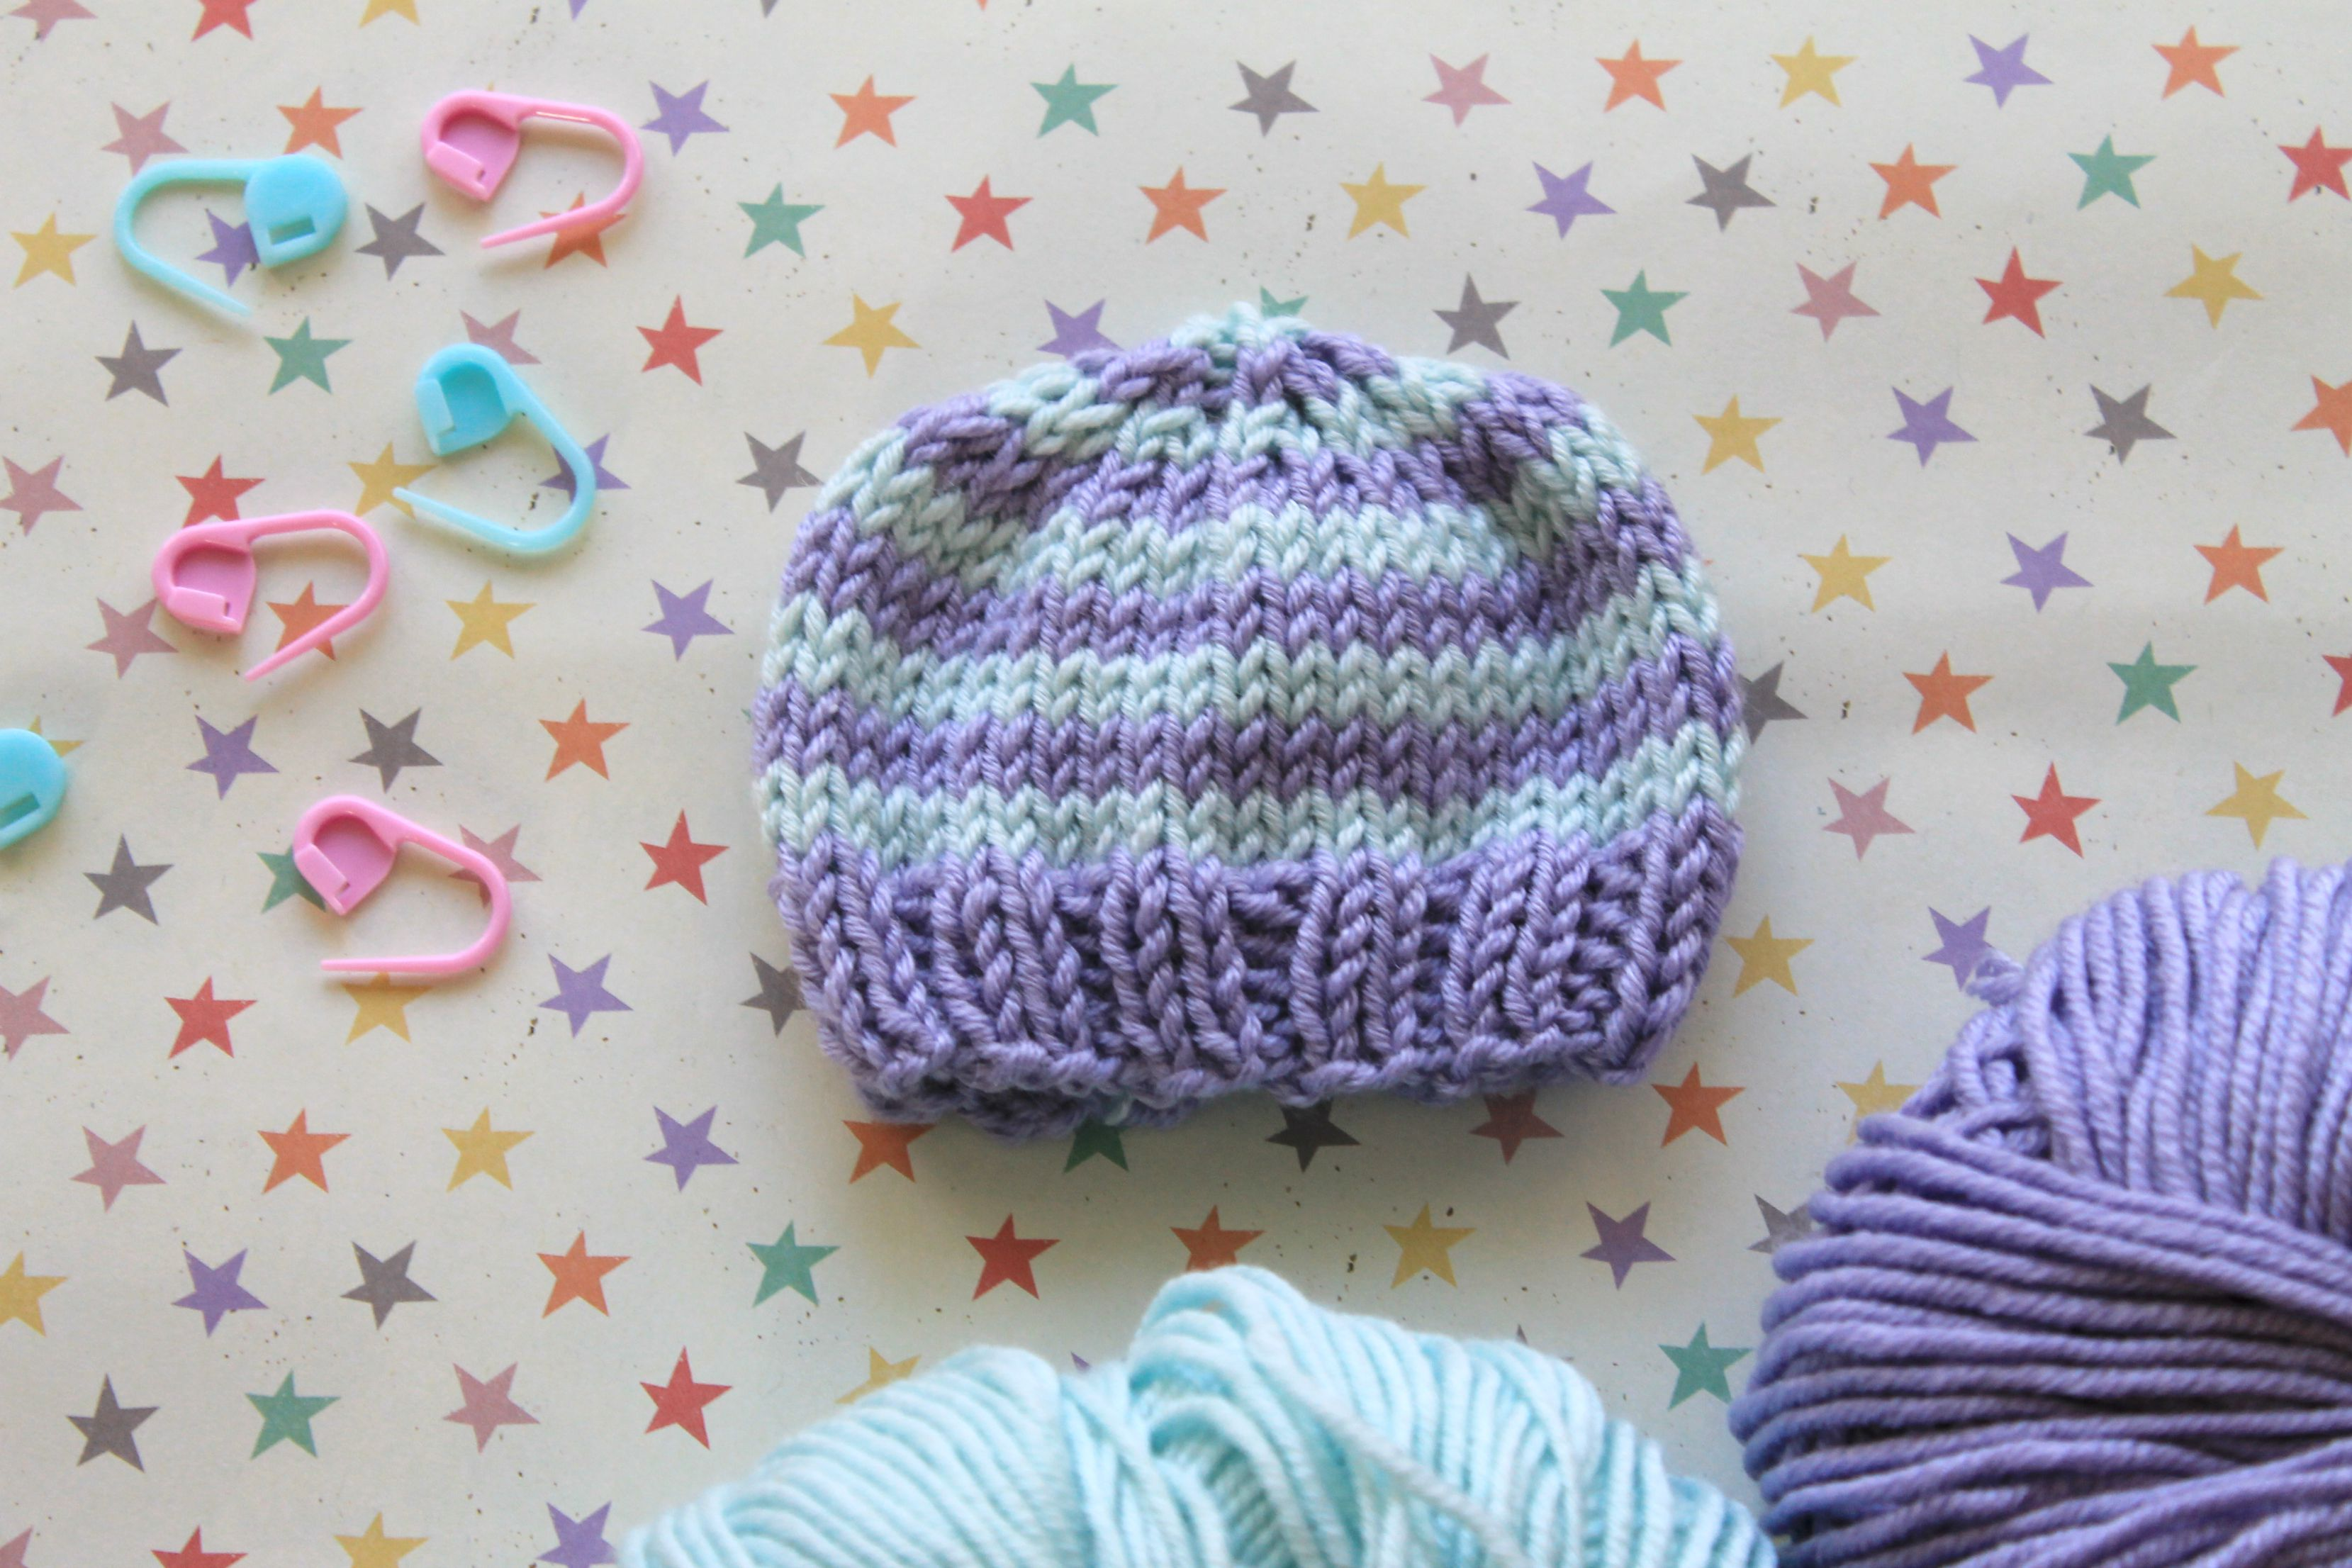 promo code for how much yarn to make a baby hat patterns 7cc3f 6927e d784af5c684